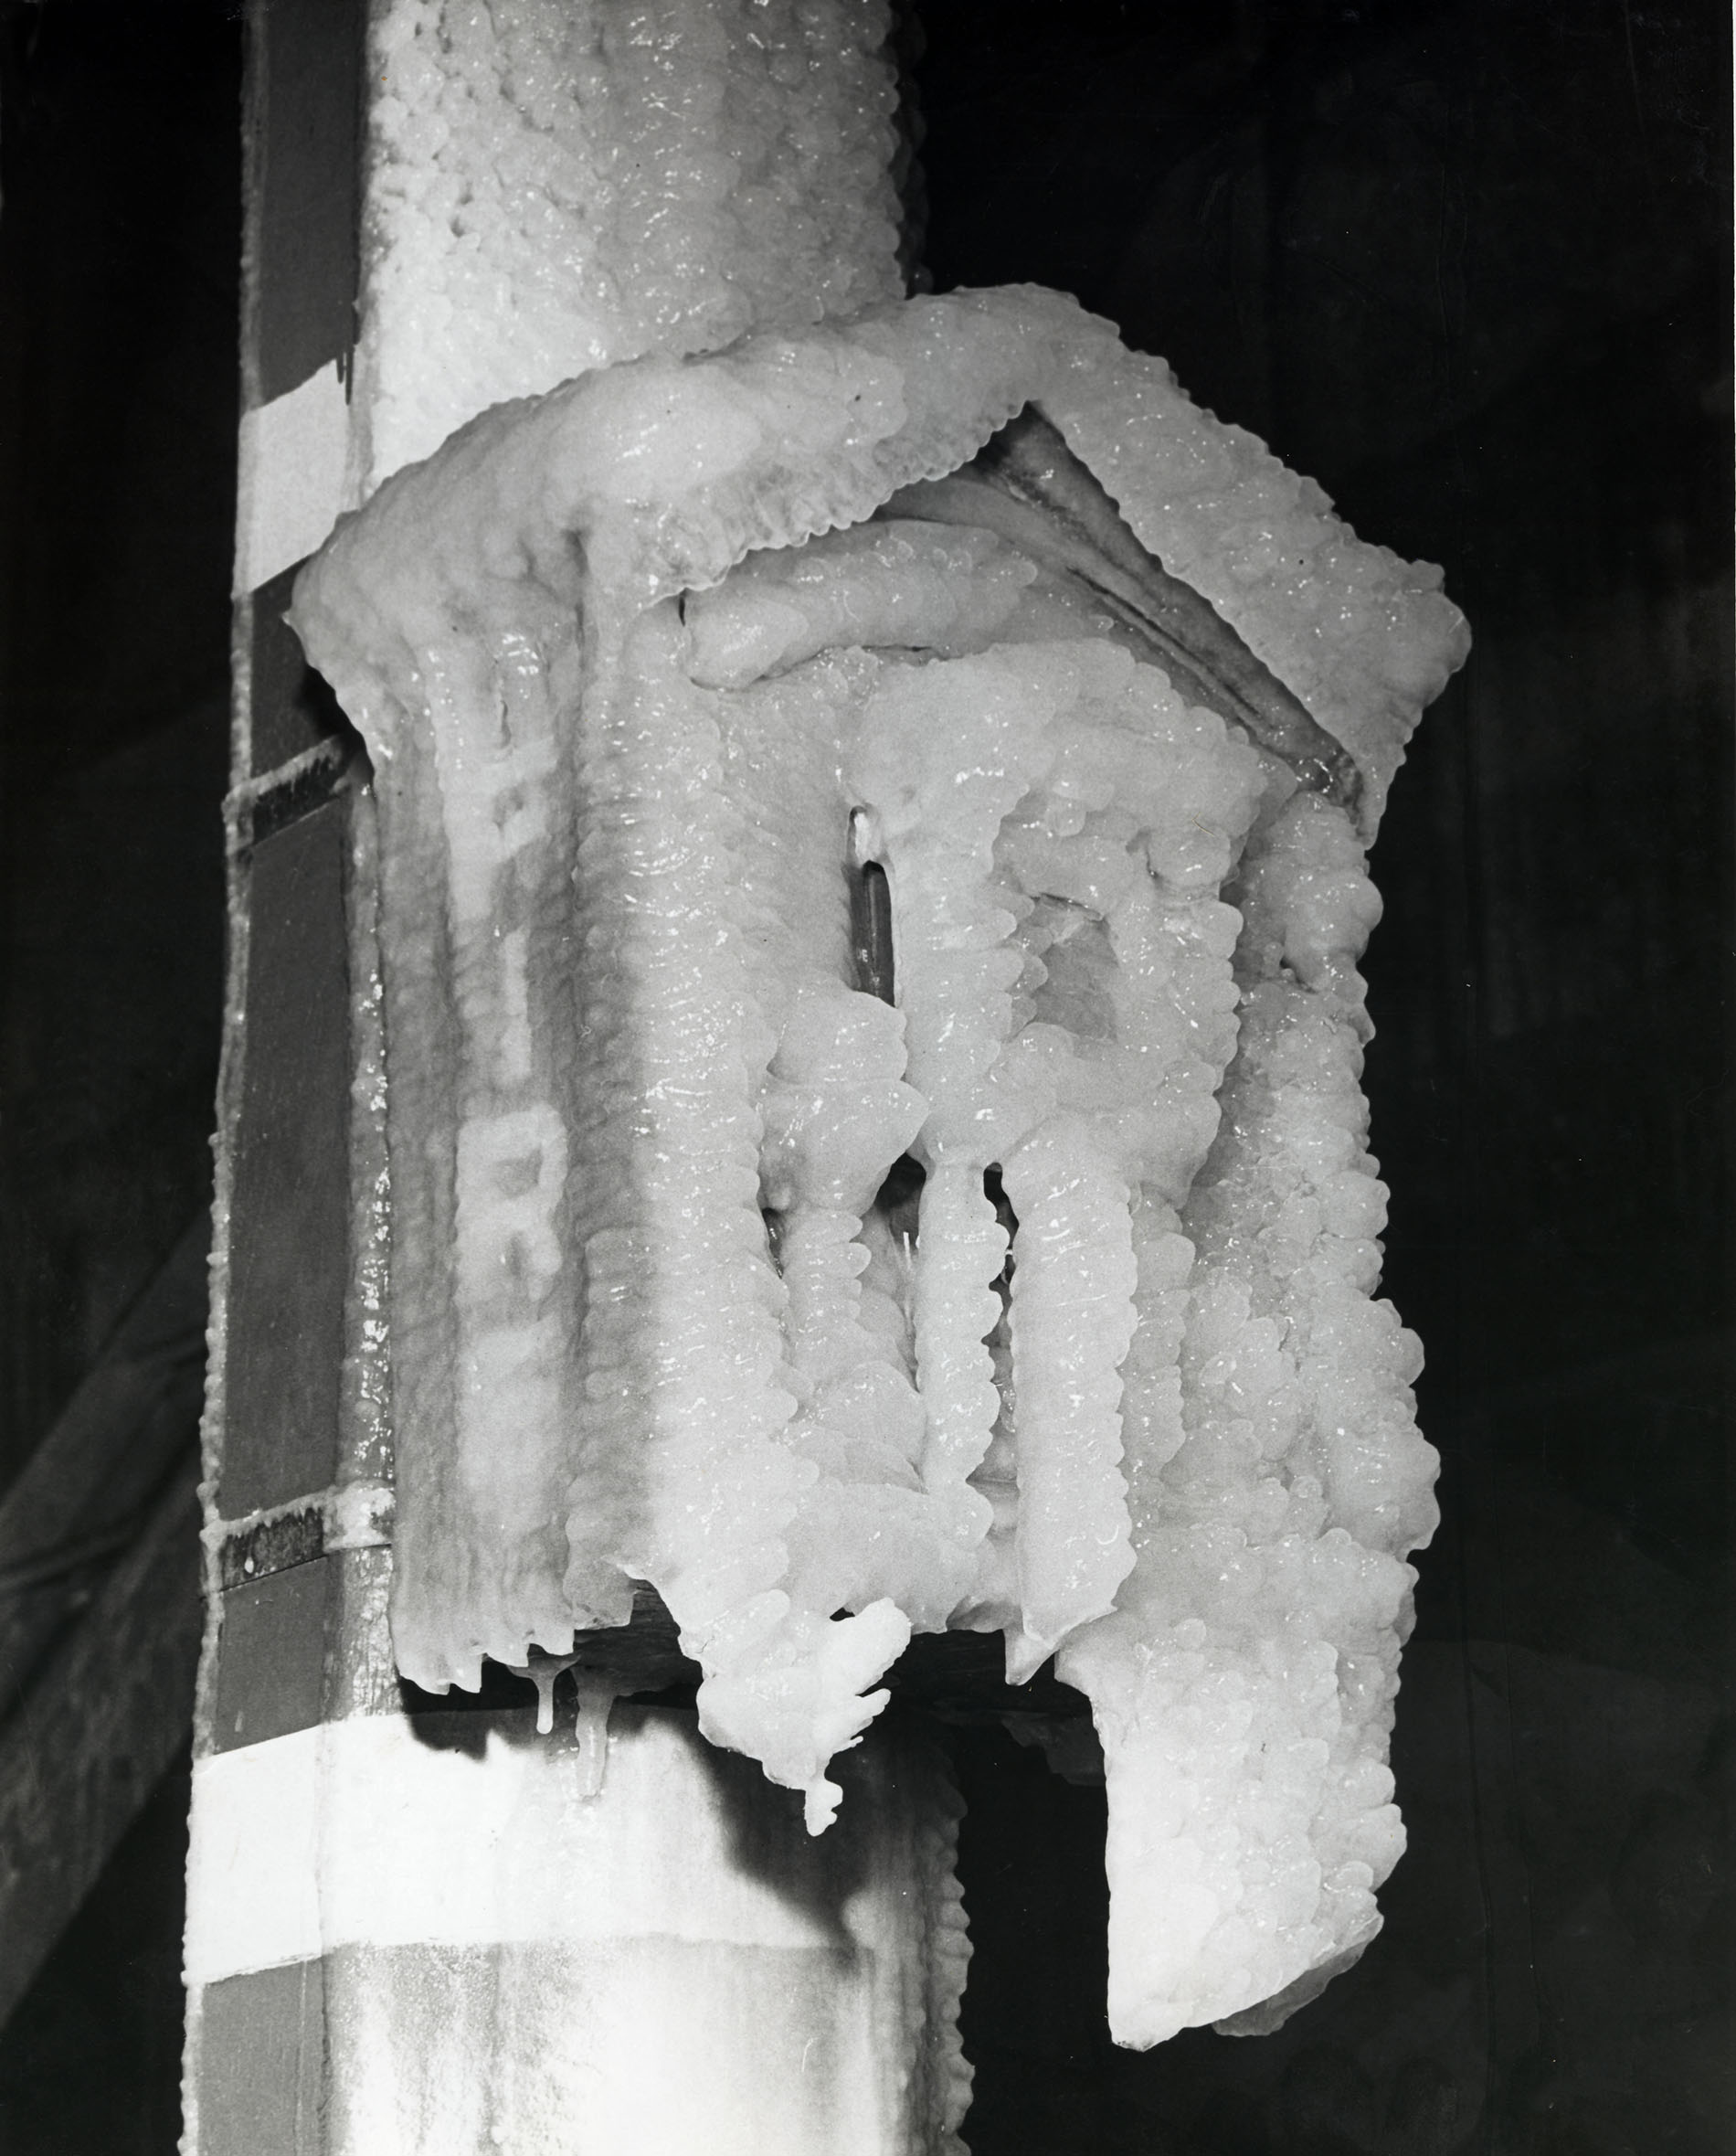 pole-mounted alarm box covered in ice - boite d_alarme montee sur un poteau recouvert de la glace